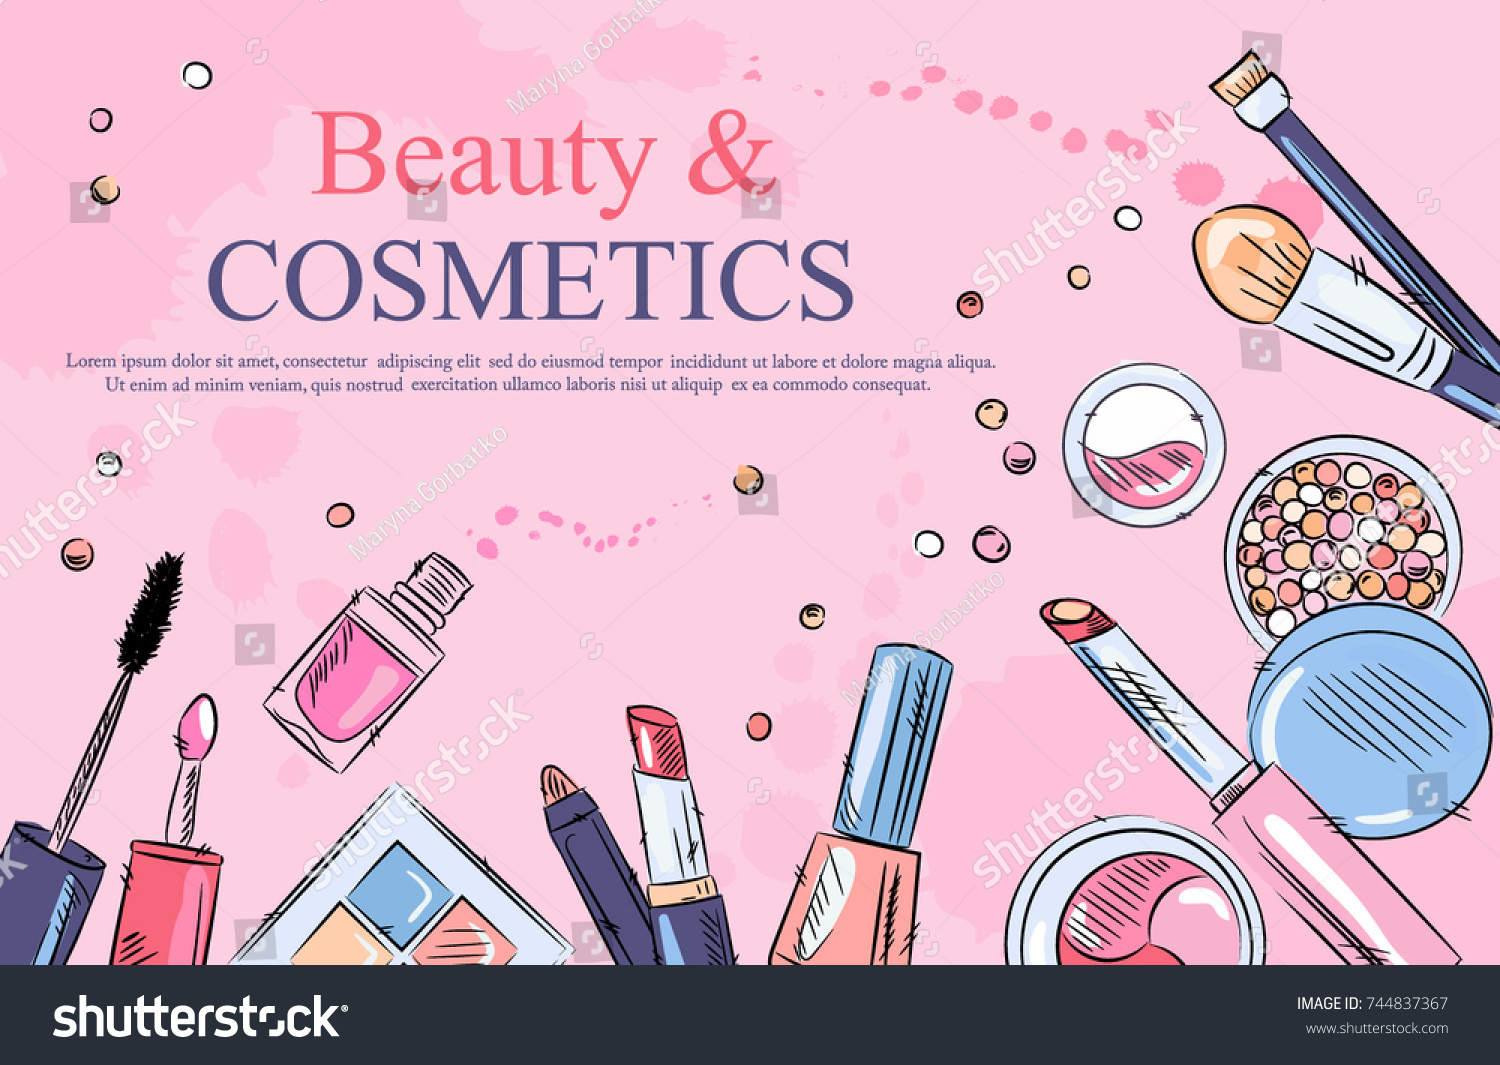 Sketch Cosmetics Products Fashion Makeup Banner Stock Vector Royalty Free 744837367